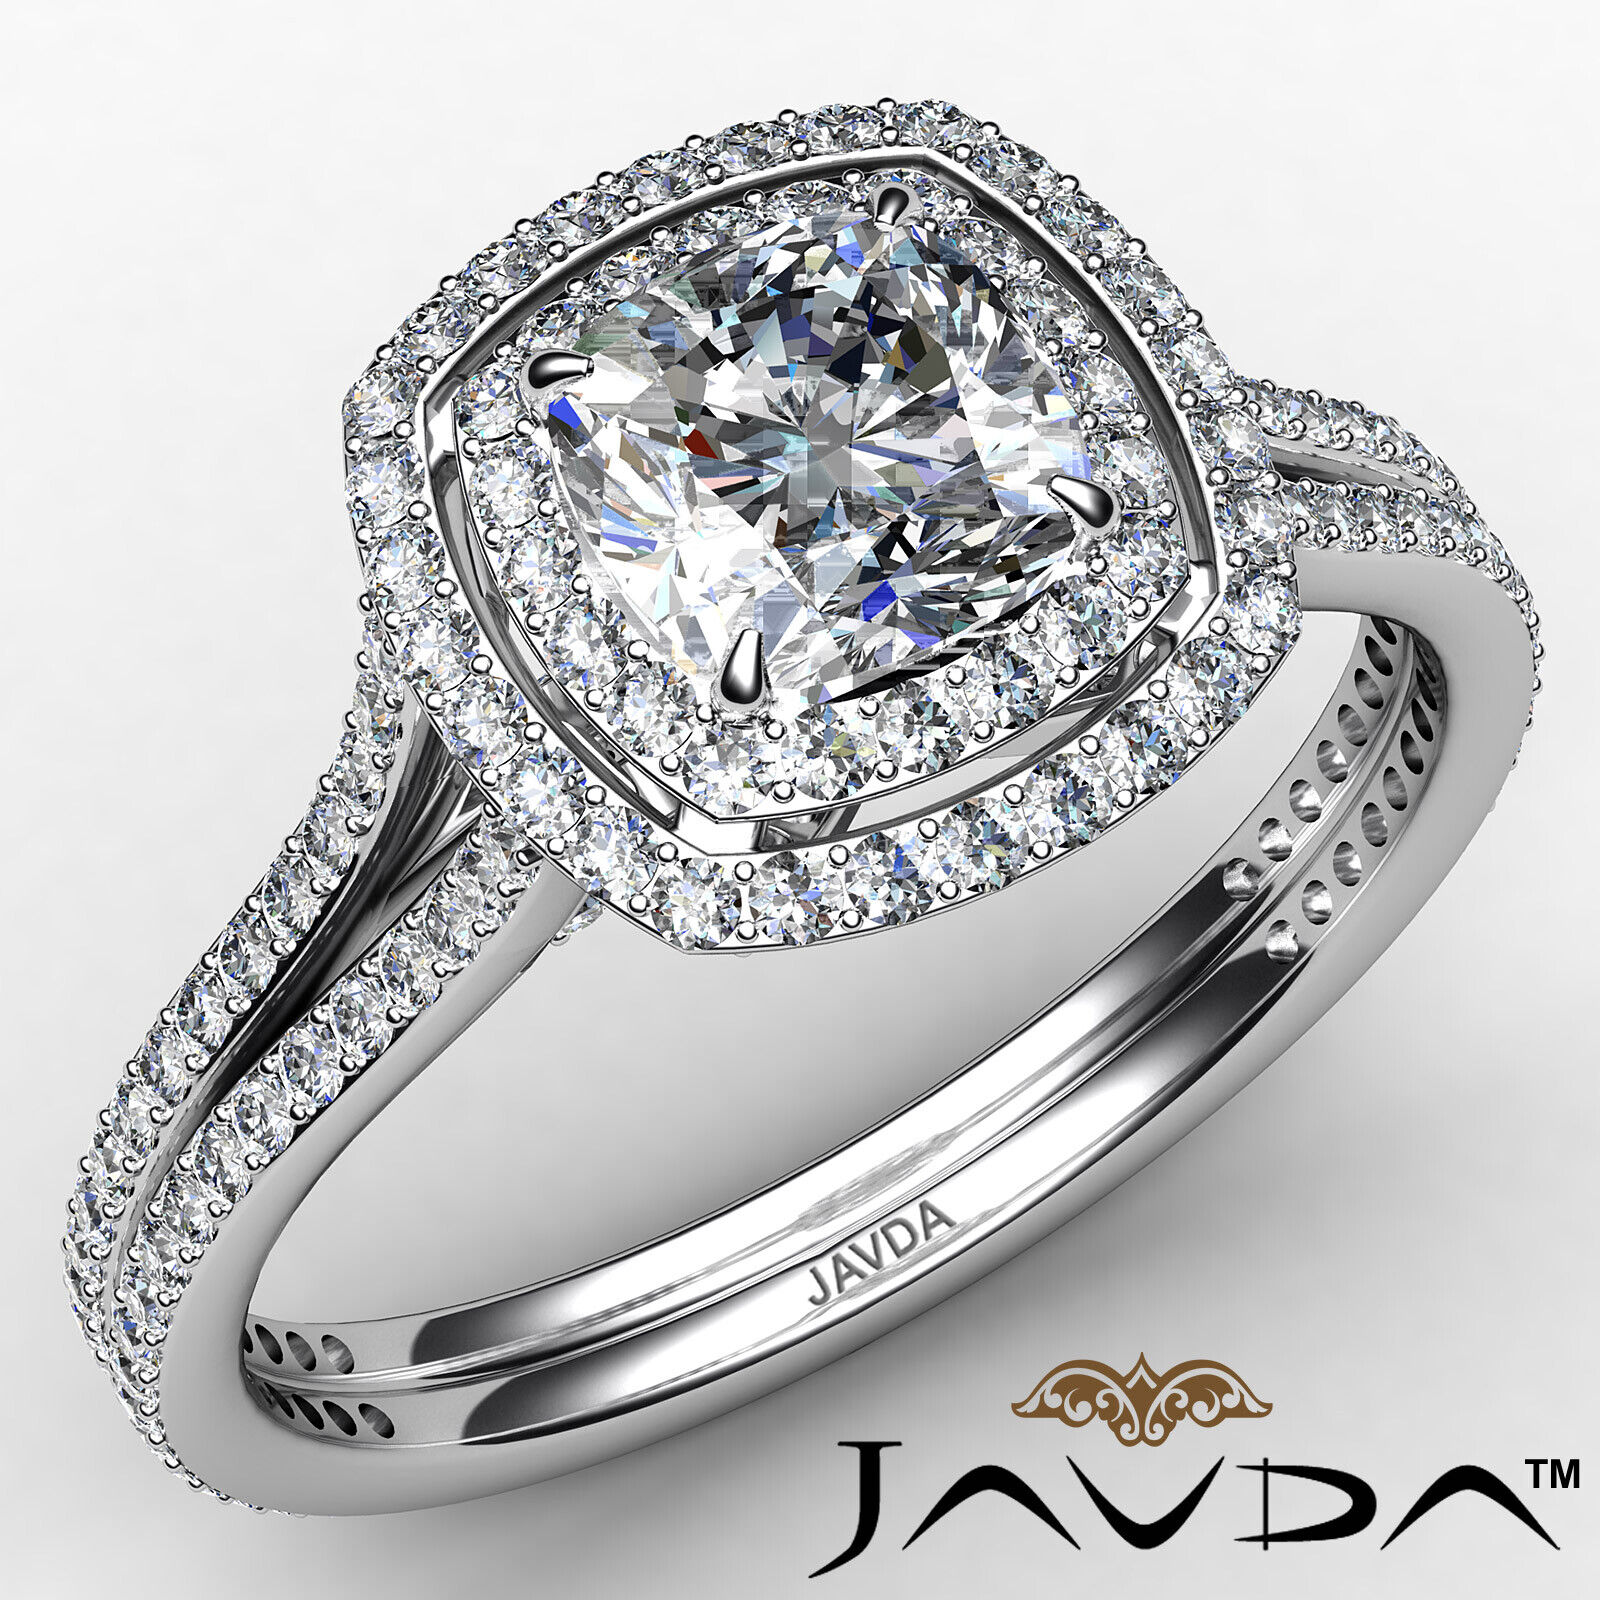 2.45 ctw Cushion Diamond Engagement Ring GIA Certified I Color & VS1 clarity